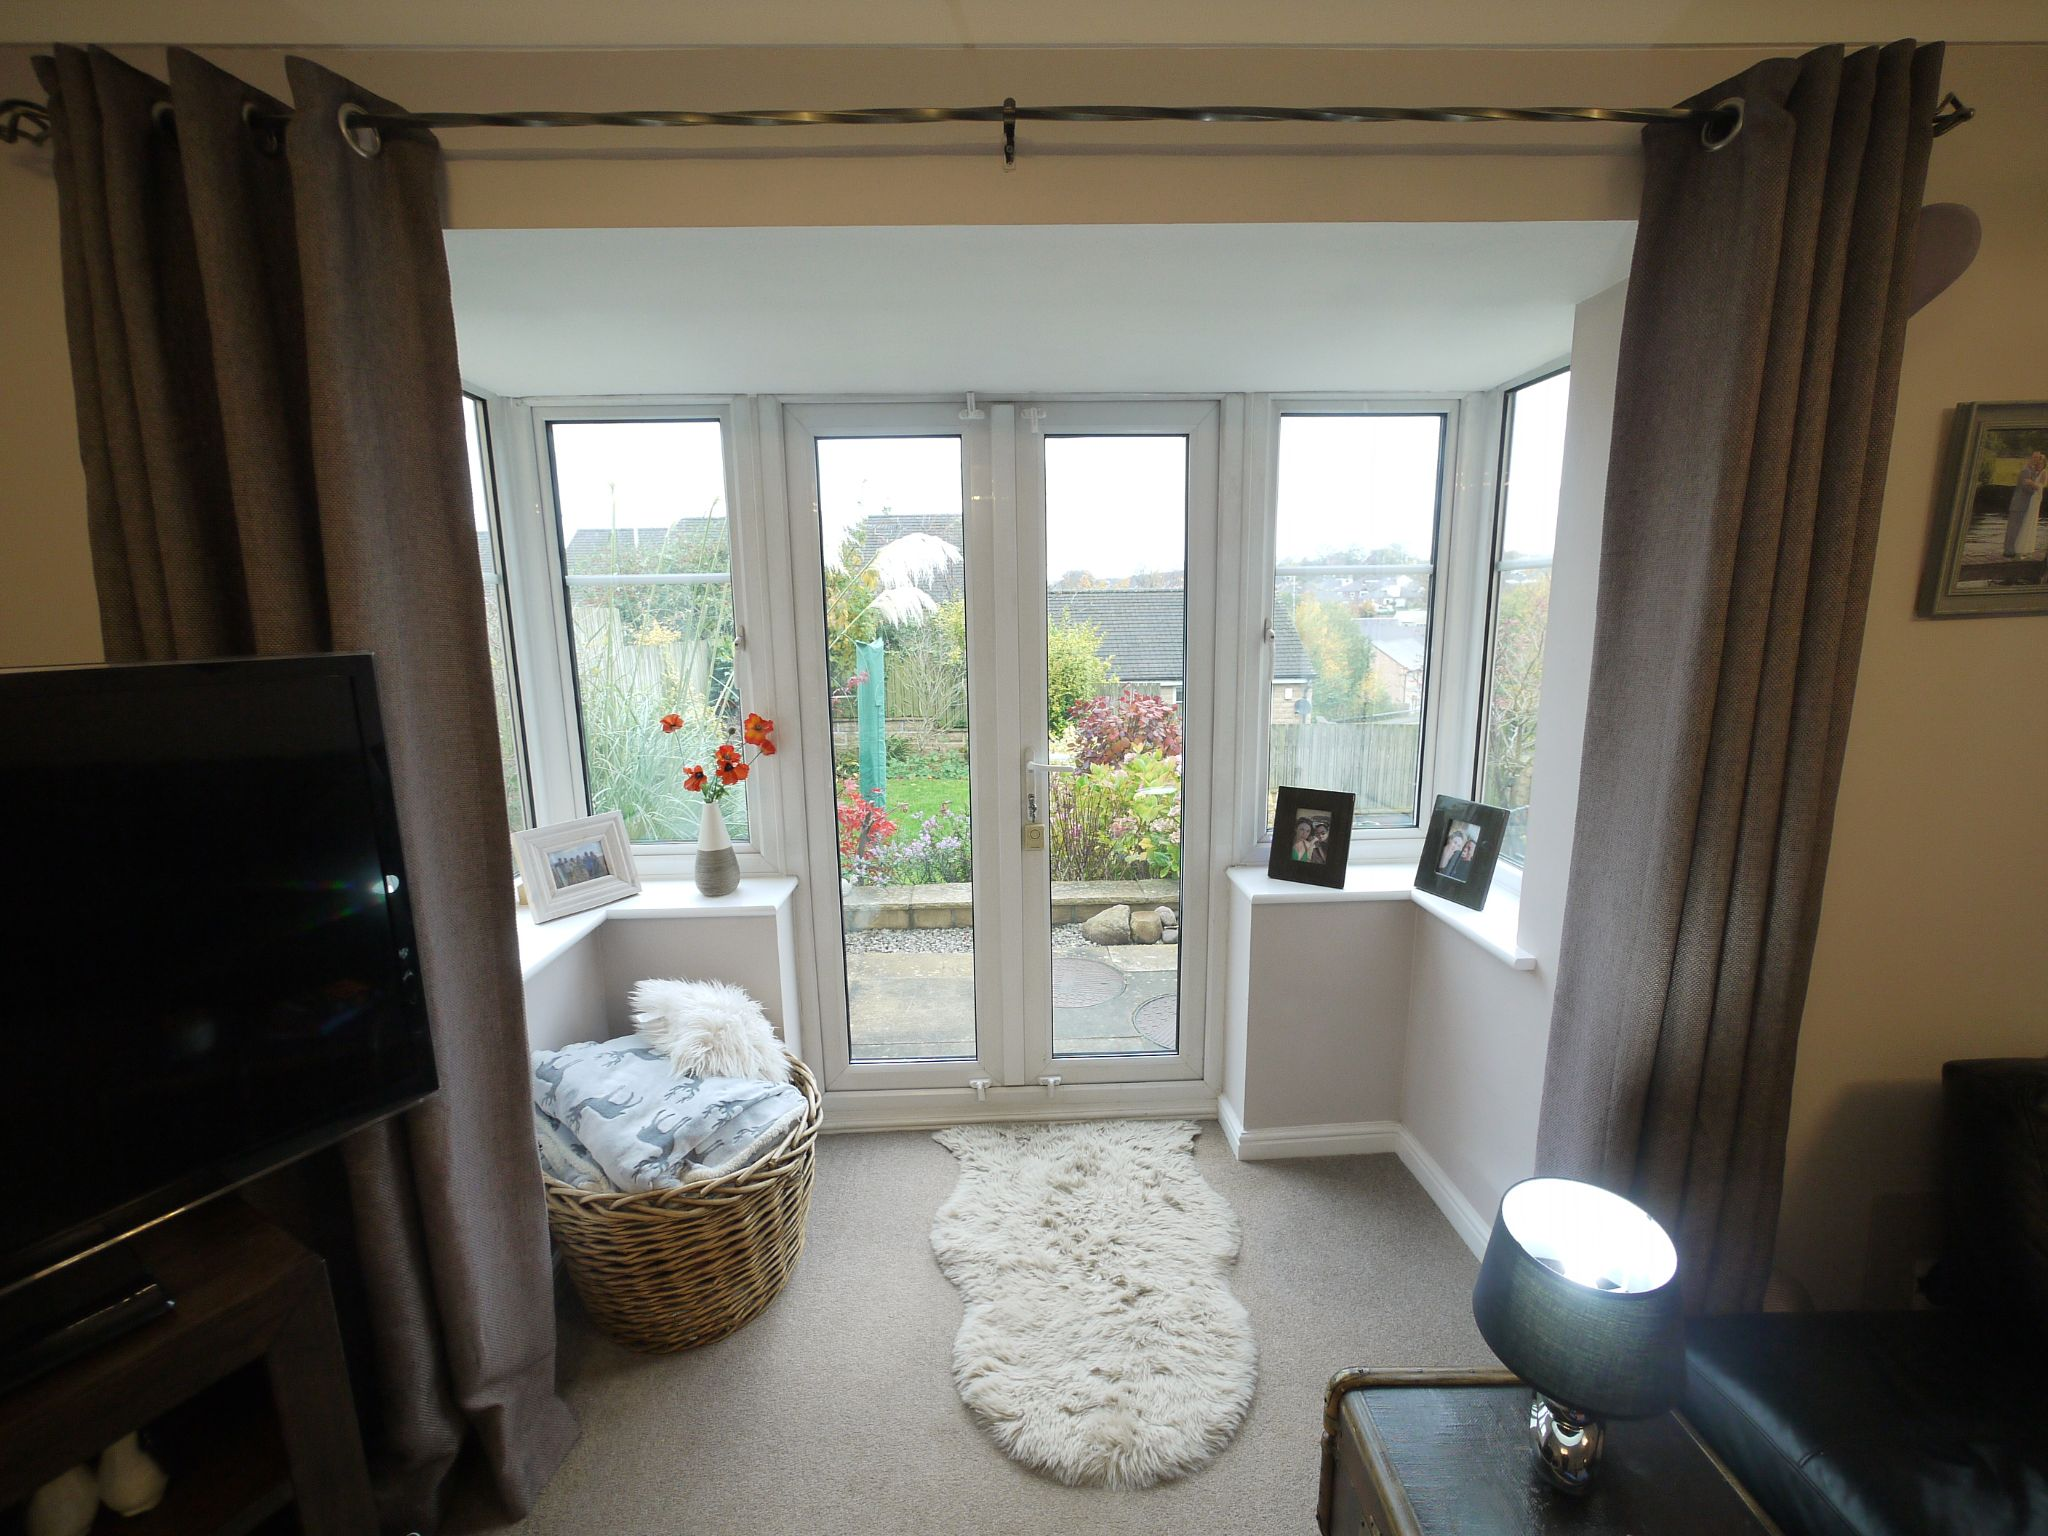 4 bedroom detached house SSTC in Brighouse - Lounge3.